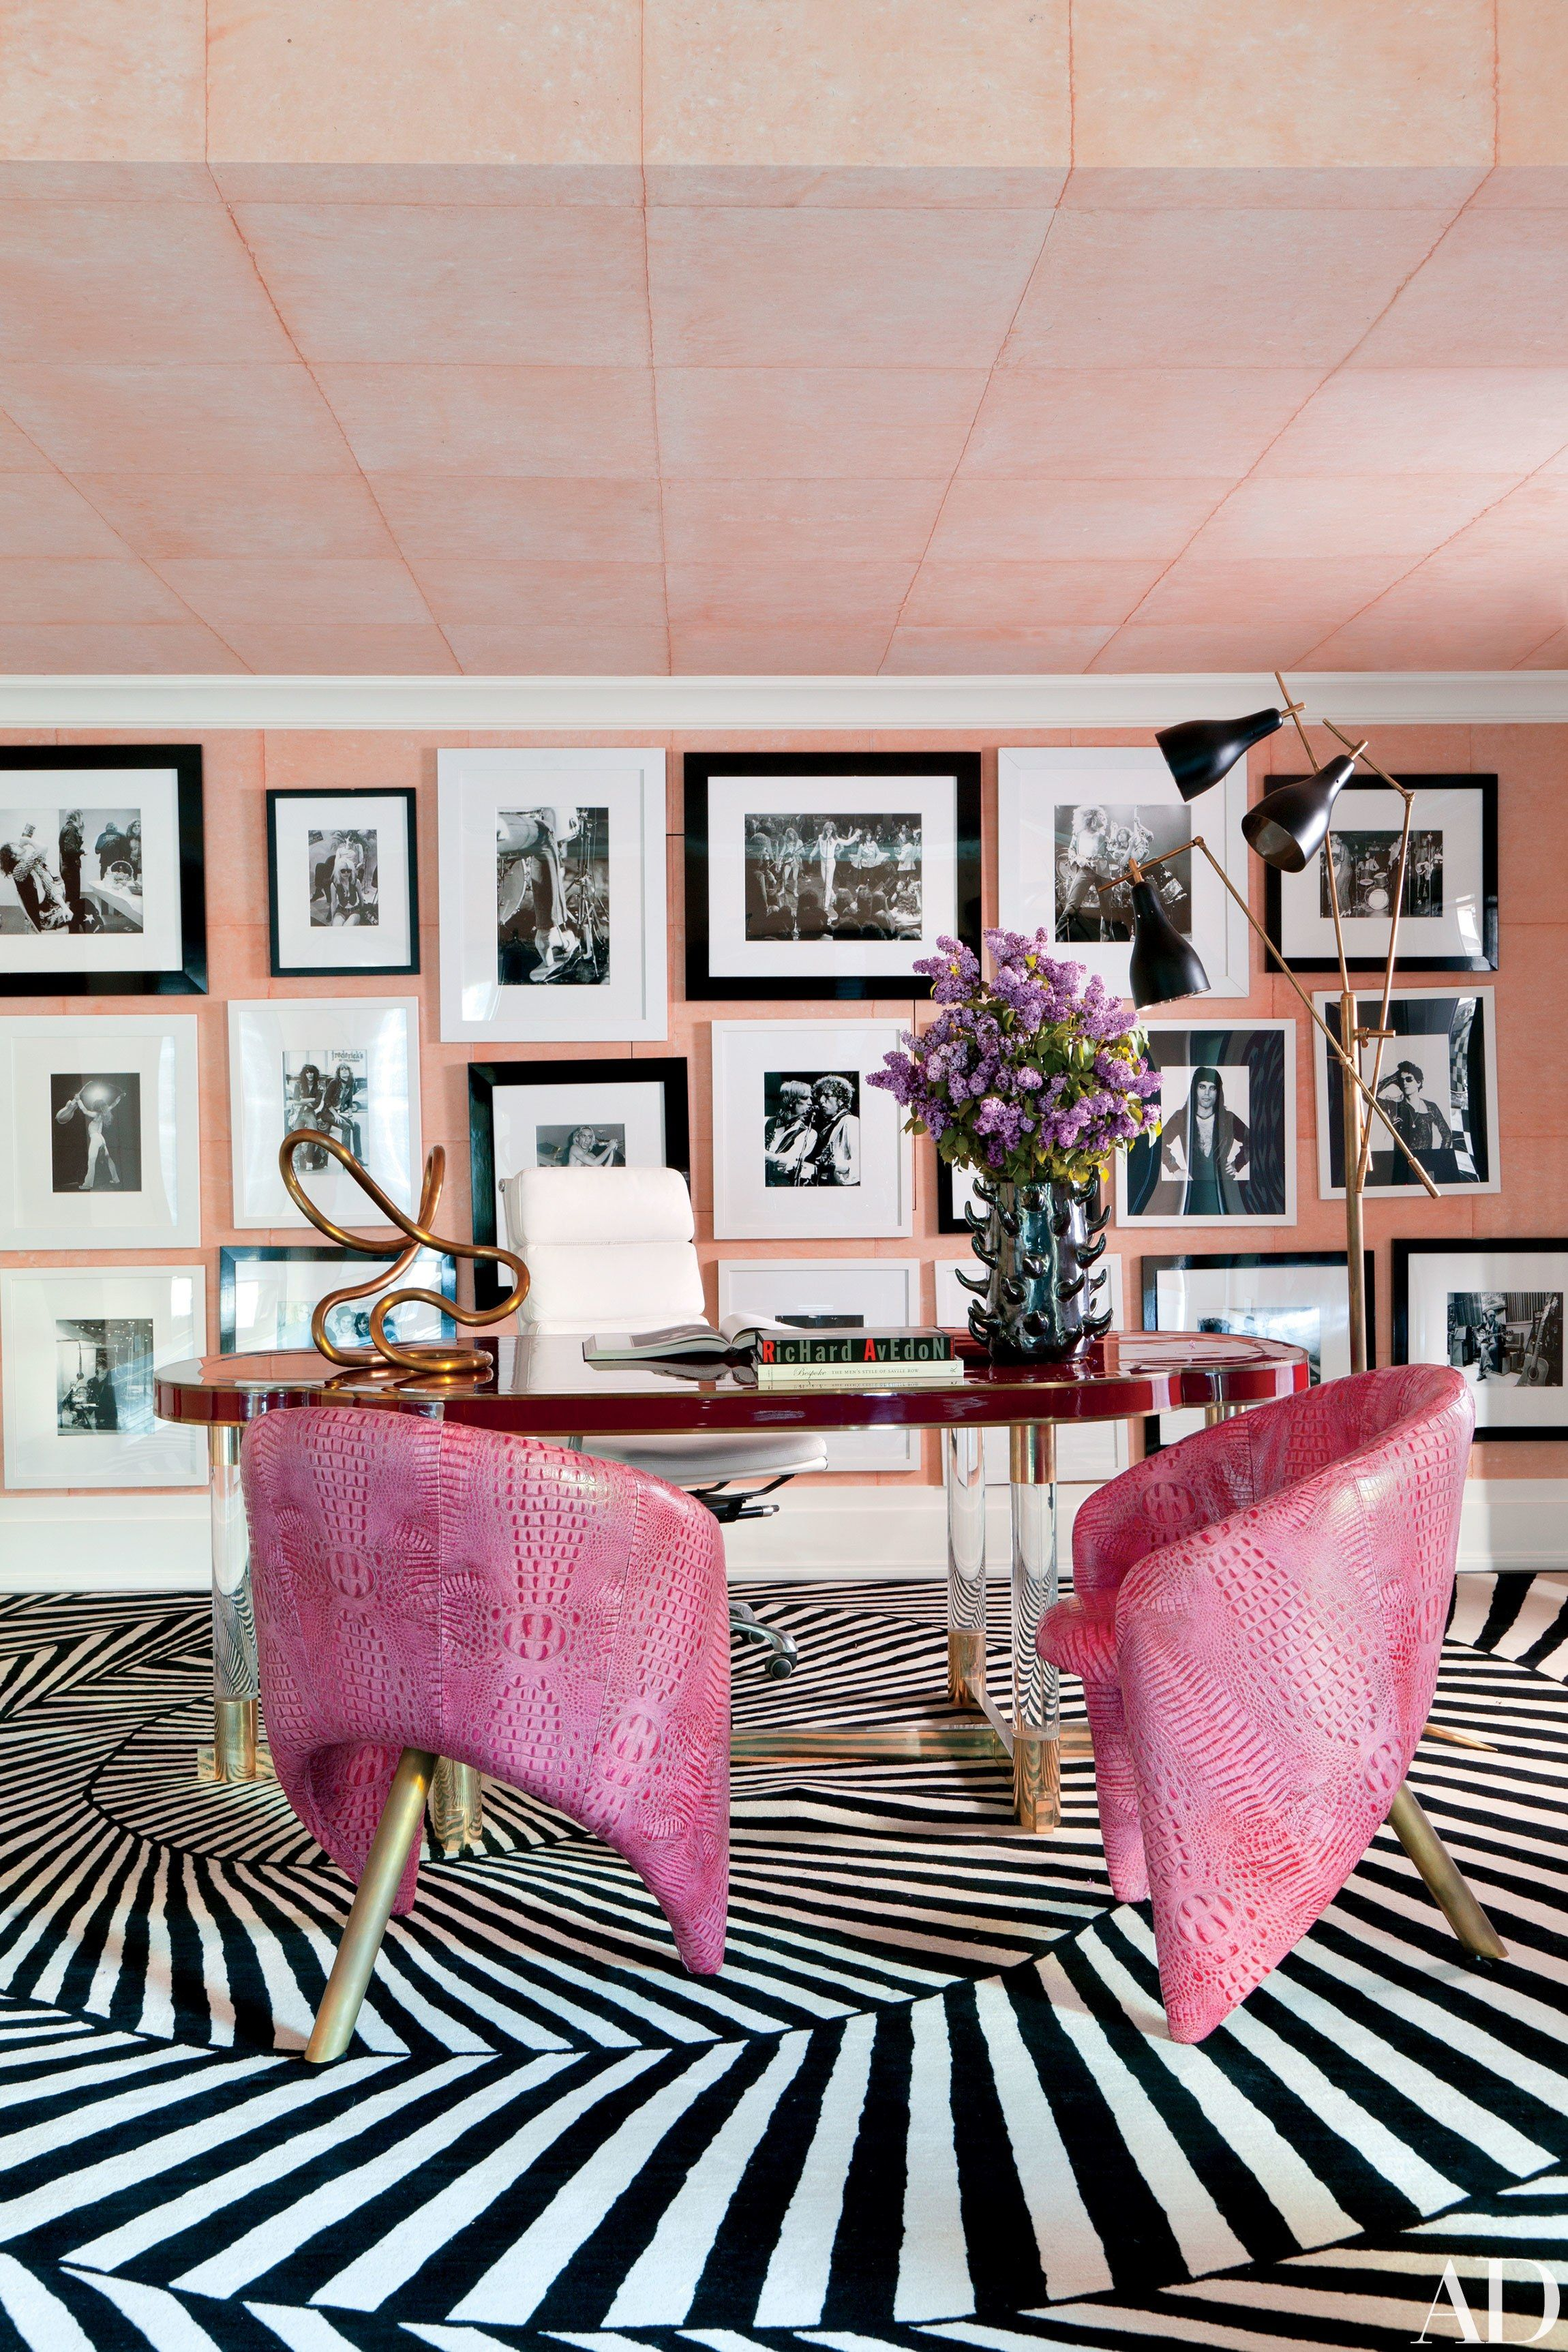 50 Home Office Design Ideas That Will Inspire Productivity | DECOR ...